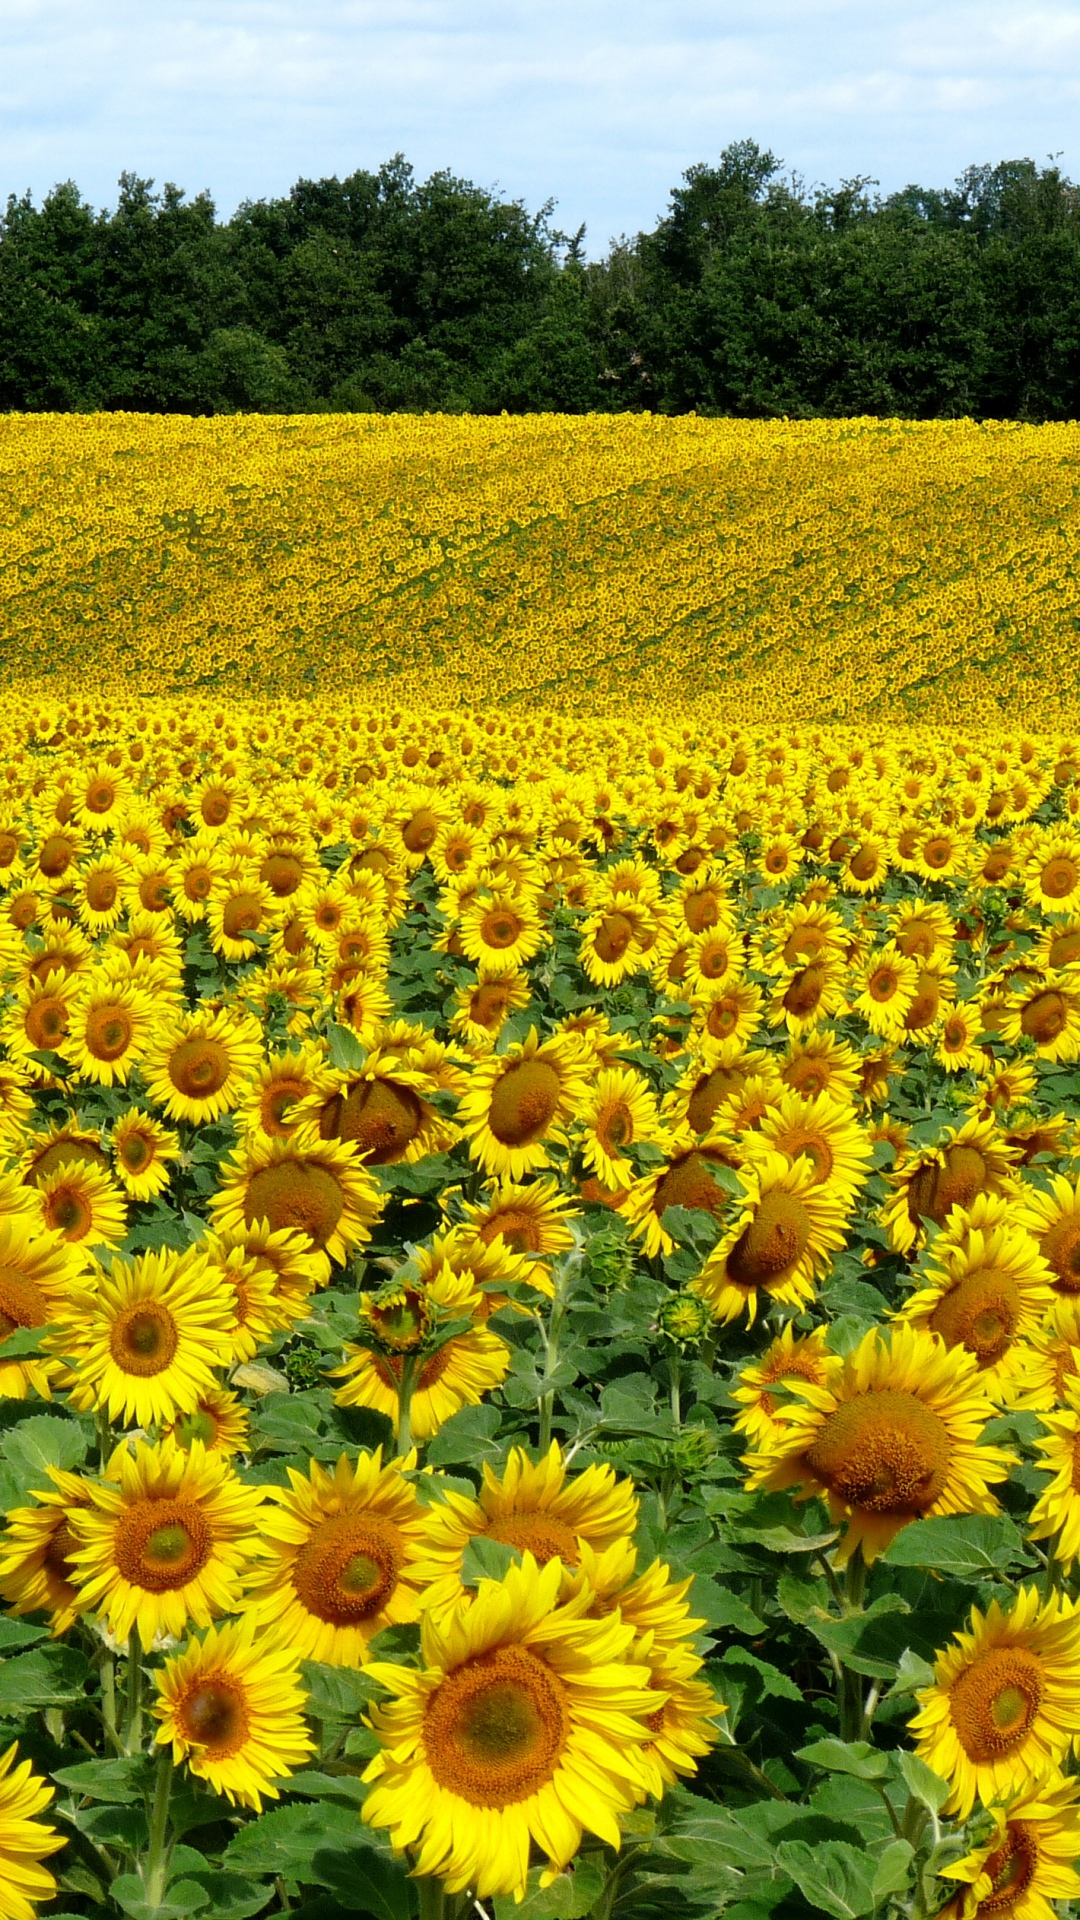 field-sunflowers-landscape-summer-wallpaper-wpc9004920